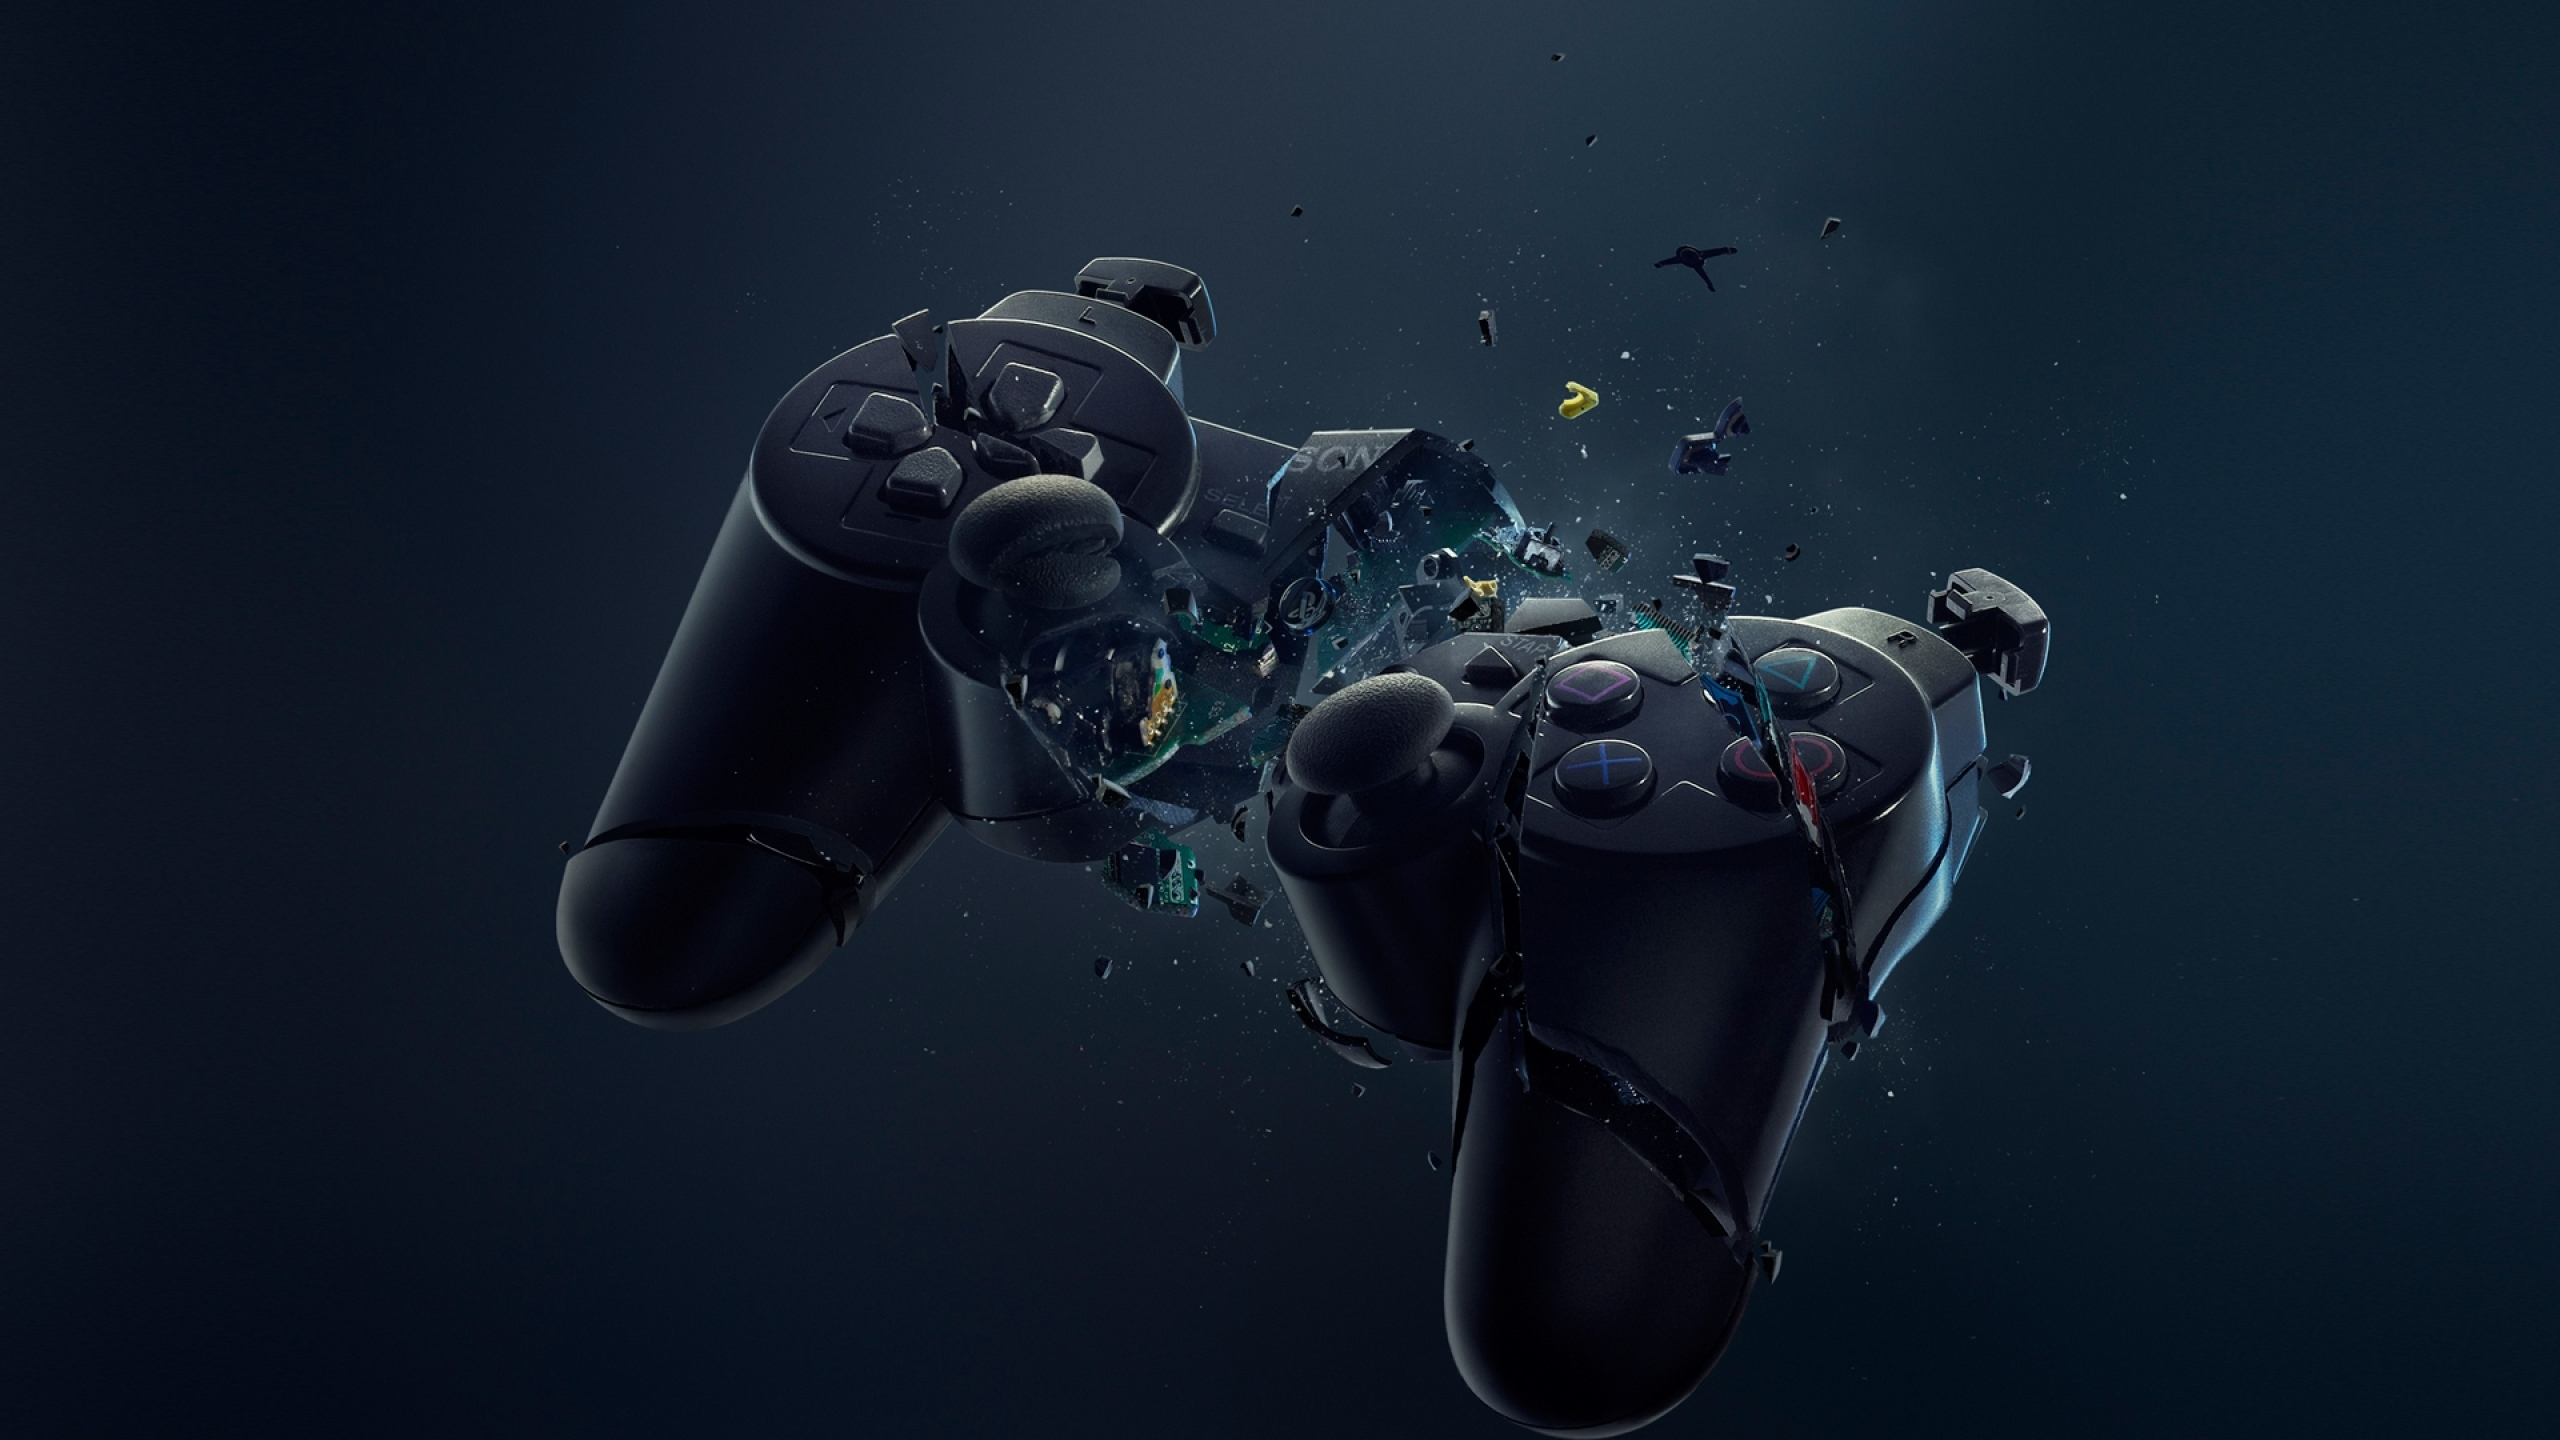 2560x1440 playstation, gamepad, crash YouTube Channel Cover